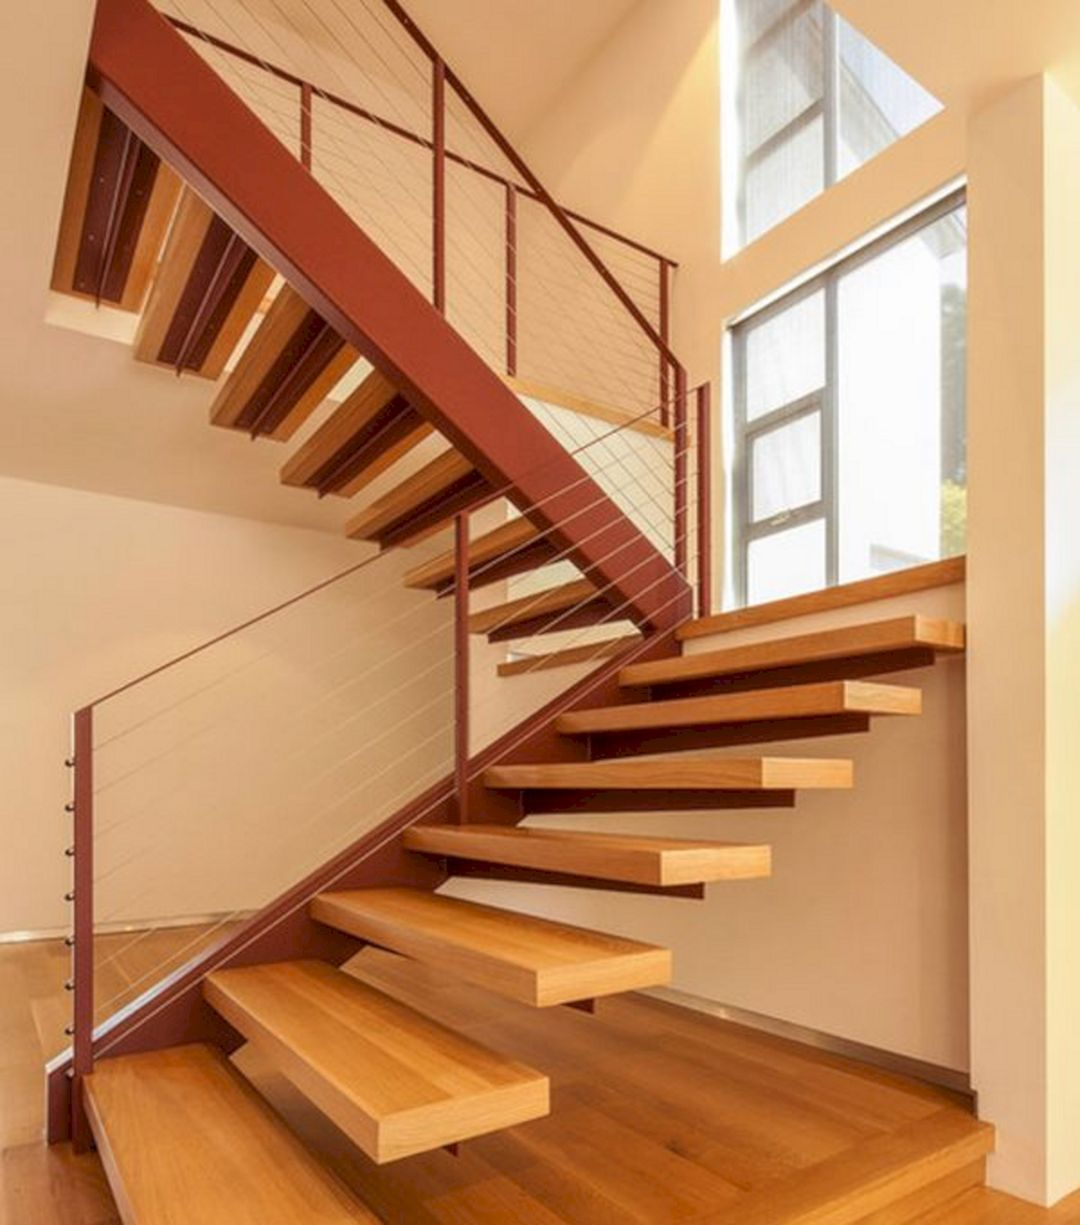 20 Excellent Traditional Staircases Design Ideas: 35+ Amazing Staircase Design Ideas For Small Home